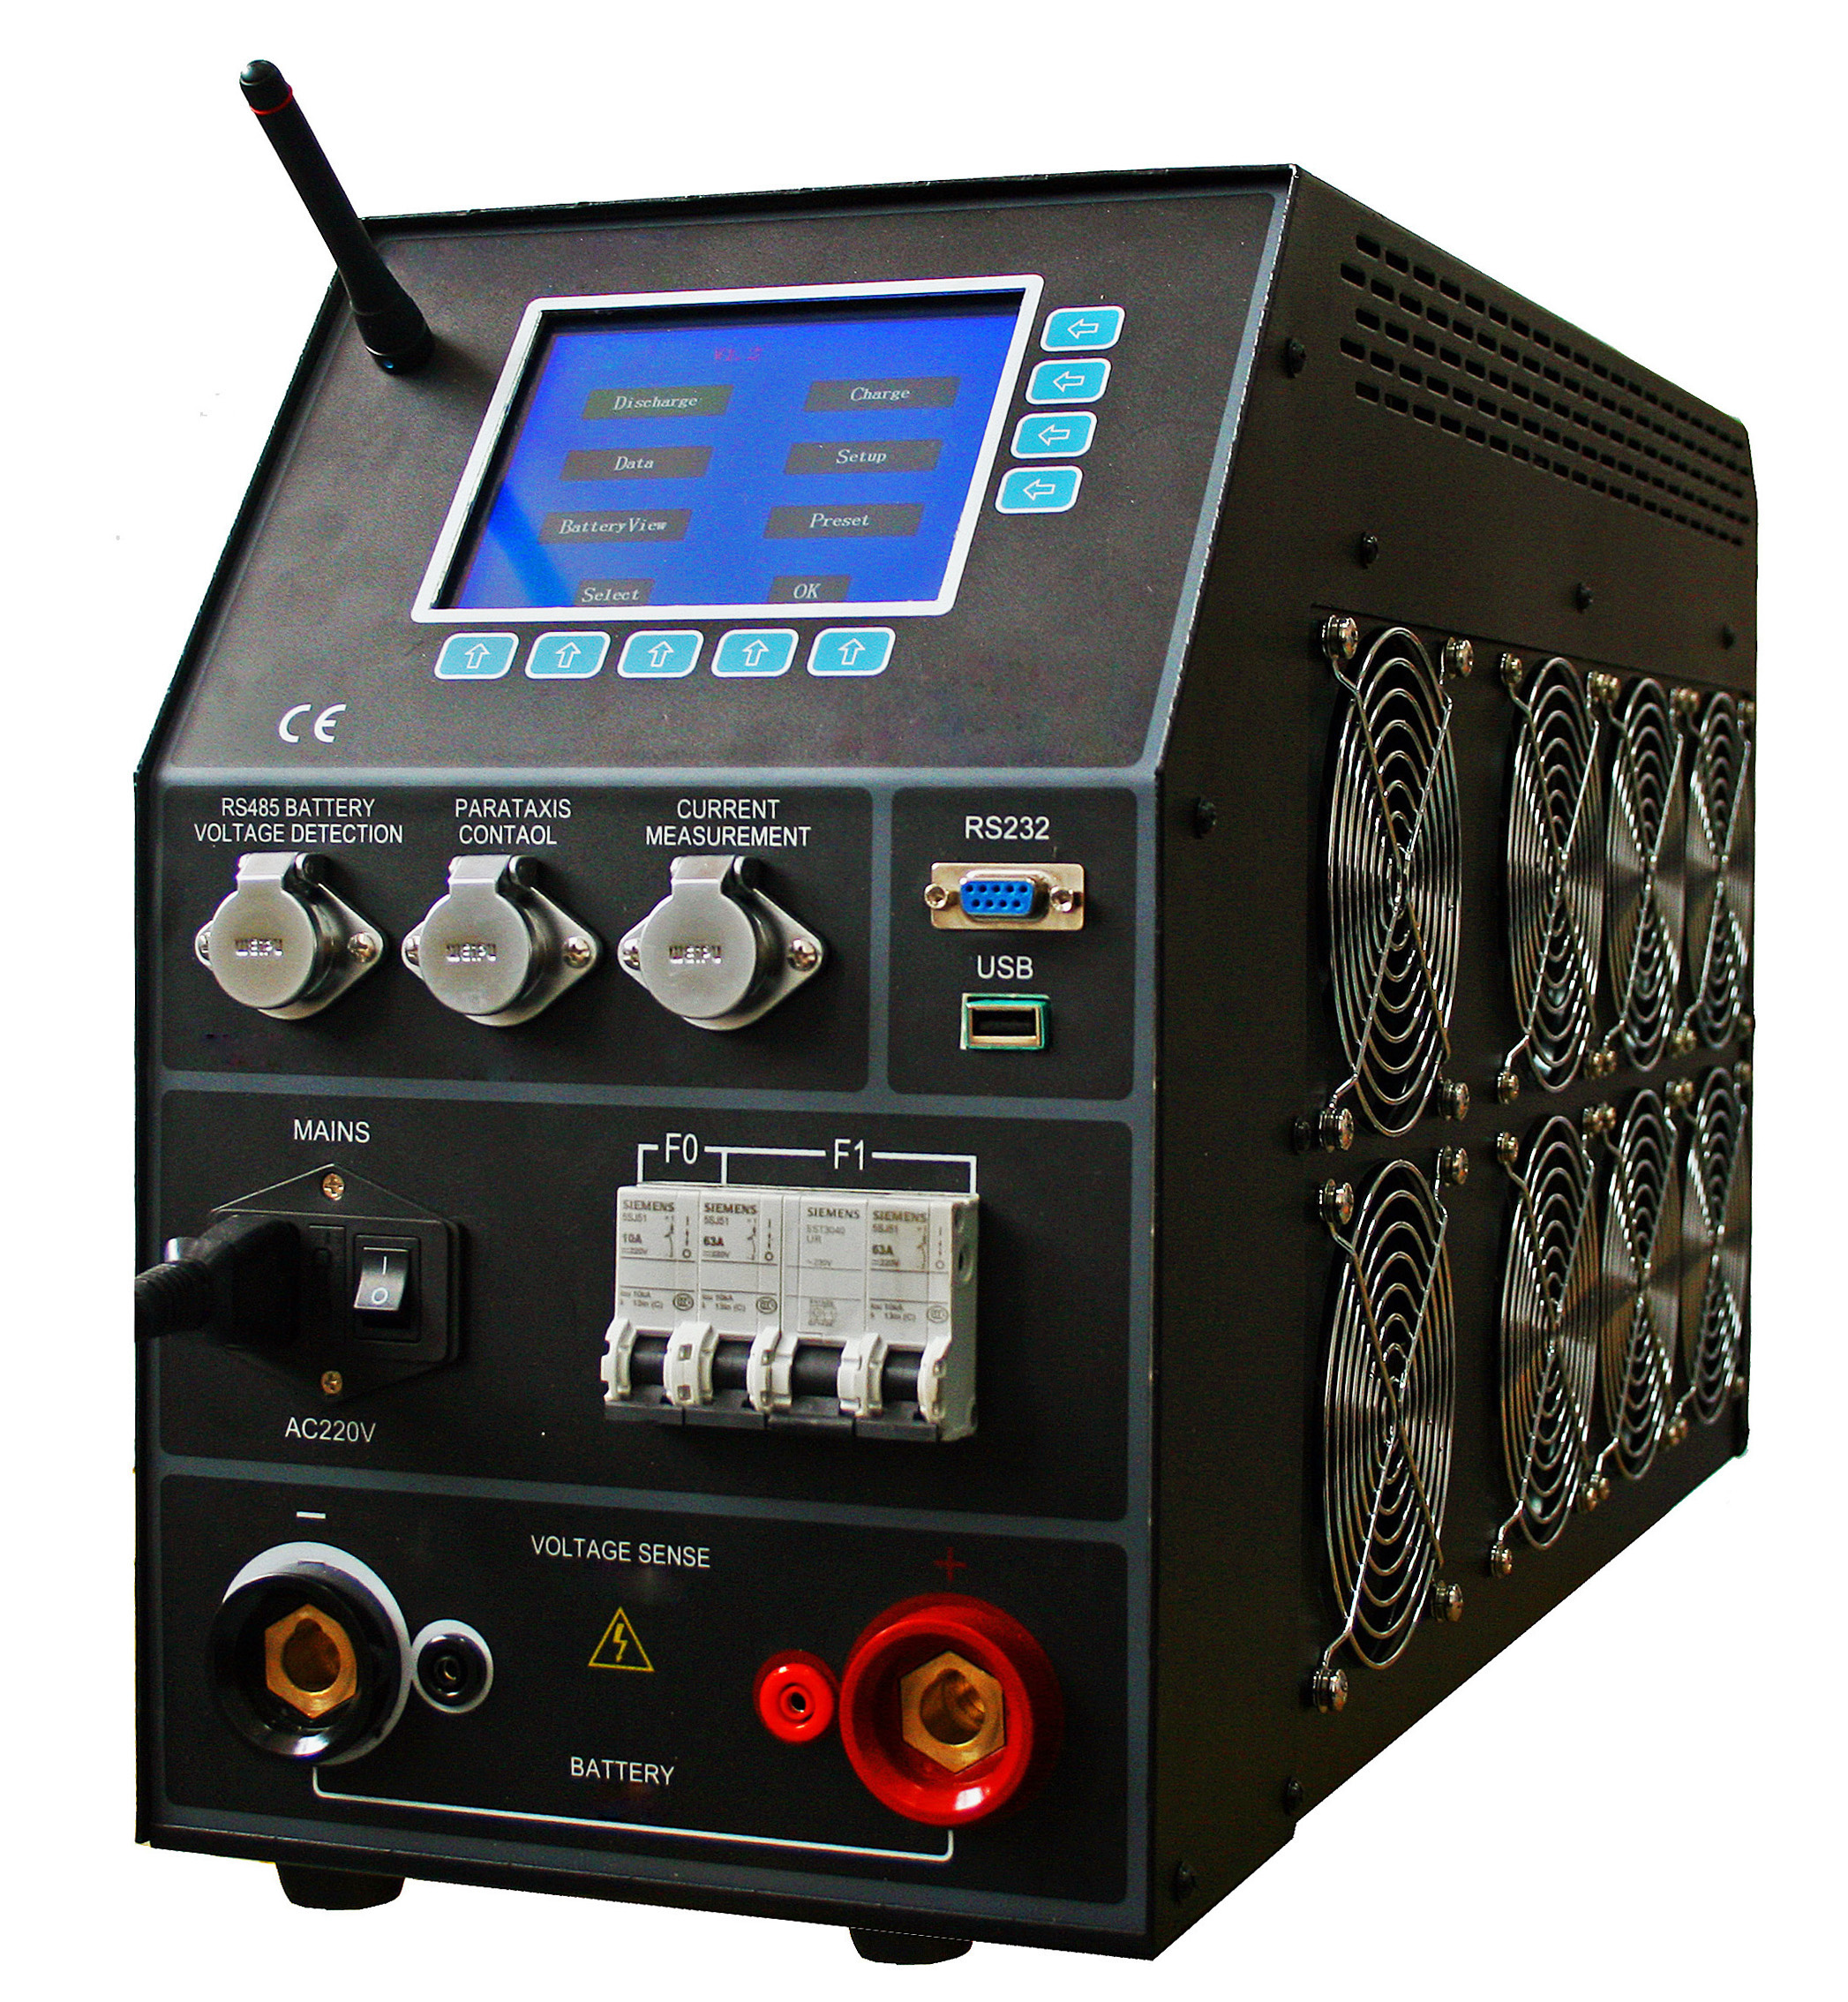 IDCE-840CT Battery Discharger & Capacity Tester (with WX-2612)